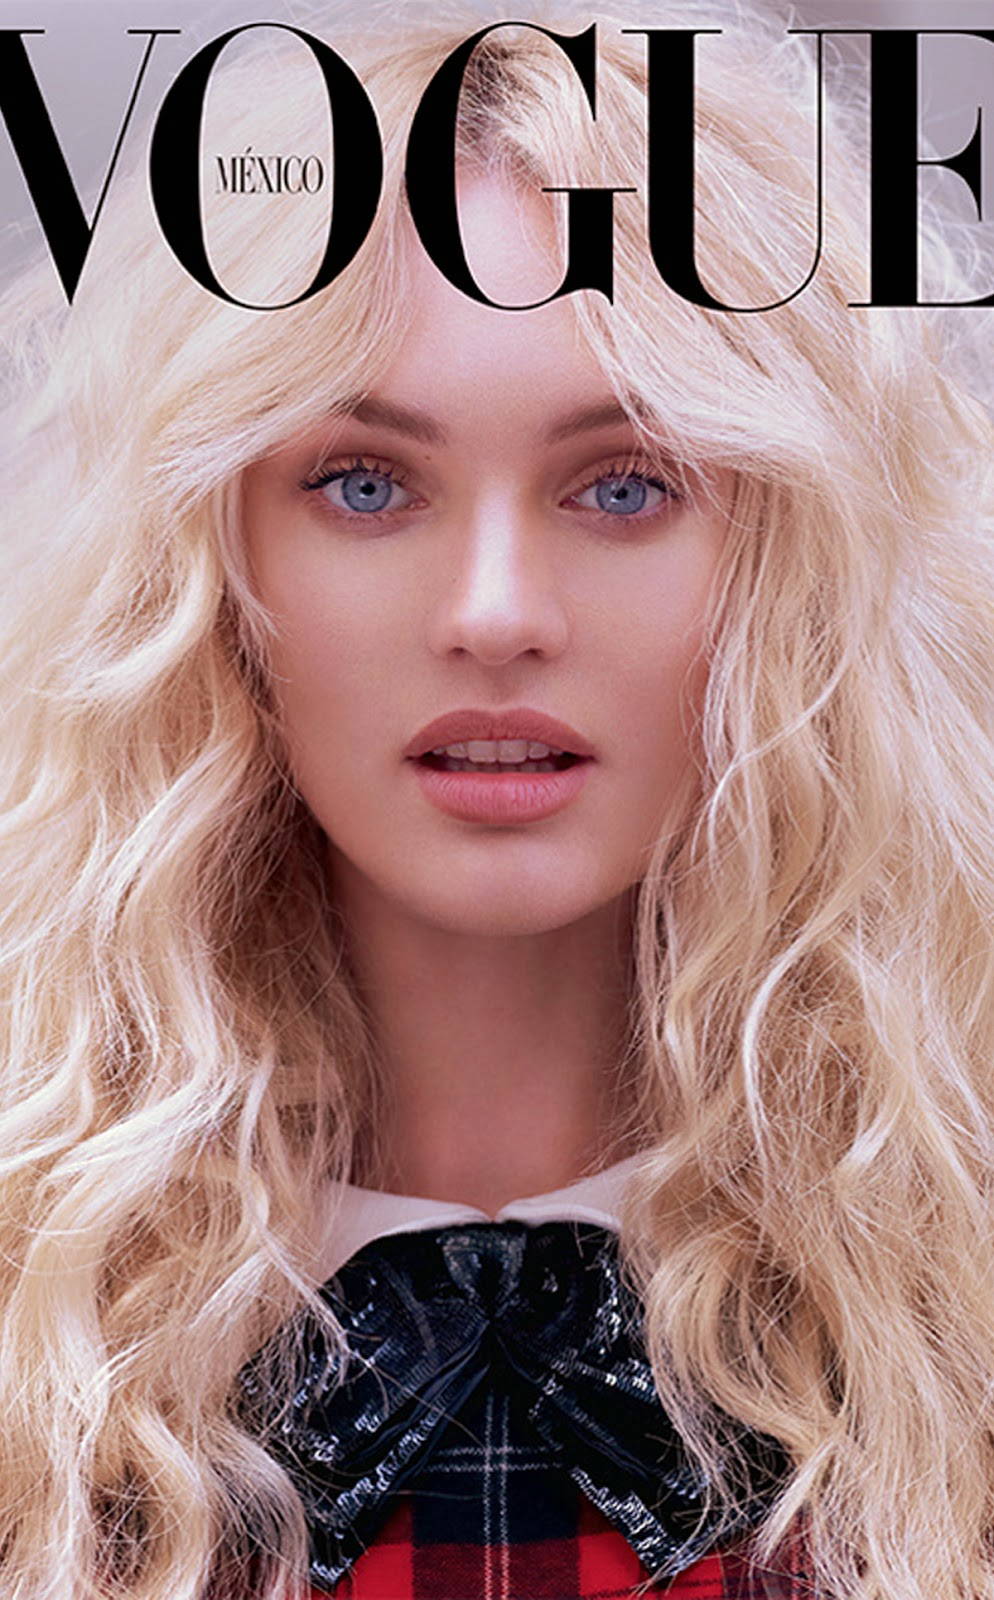 plus-CANDICE SWANEPOEL VS VOGUE MAGAZINE 2014.jpg